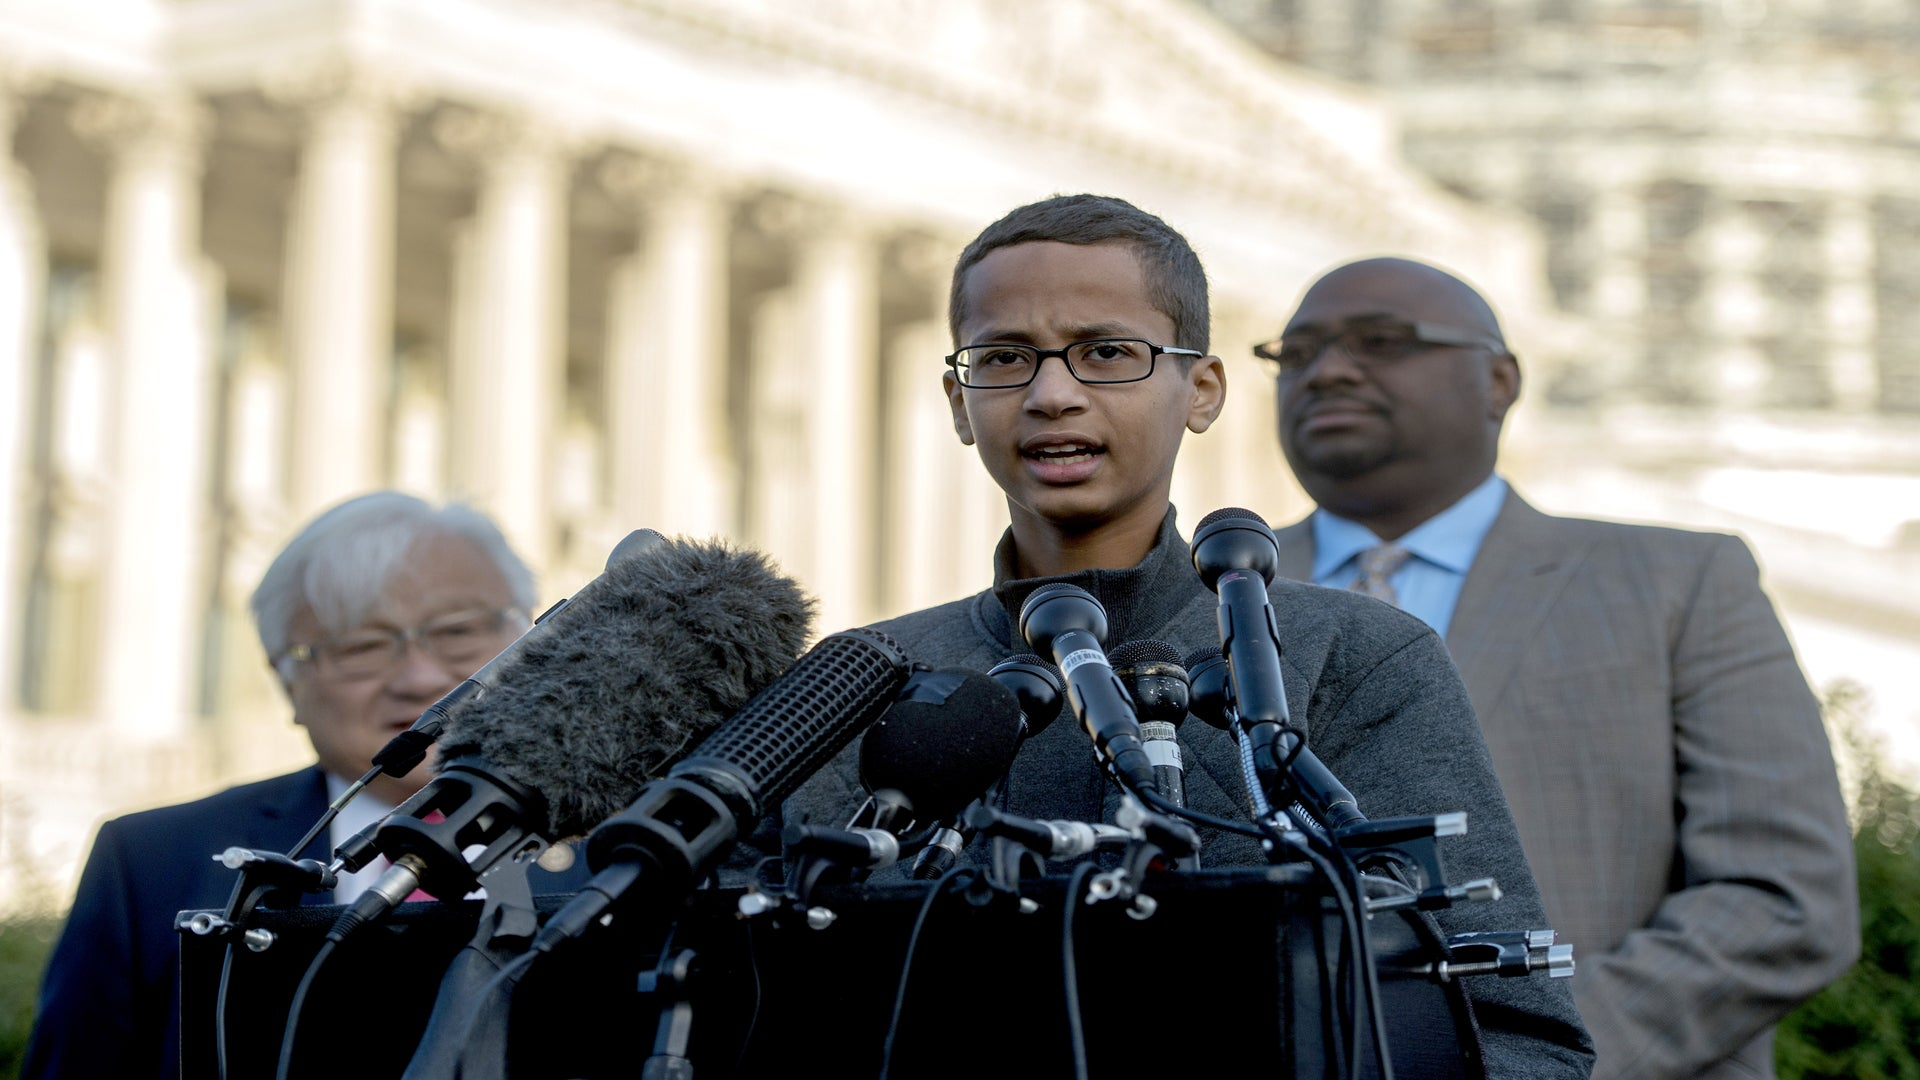 Texas Clock Teen Ahmed Mohamed Files Federal Civil Rights Lawsuit Against His Former School